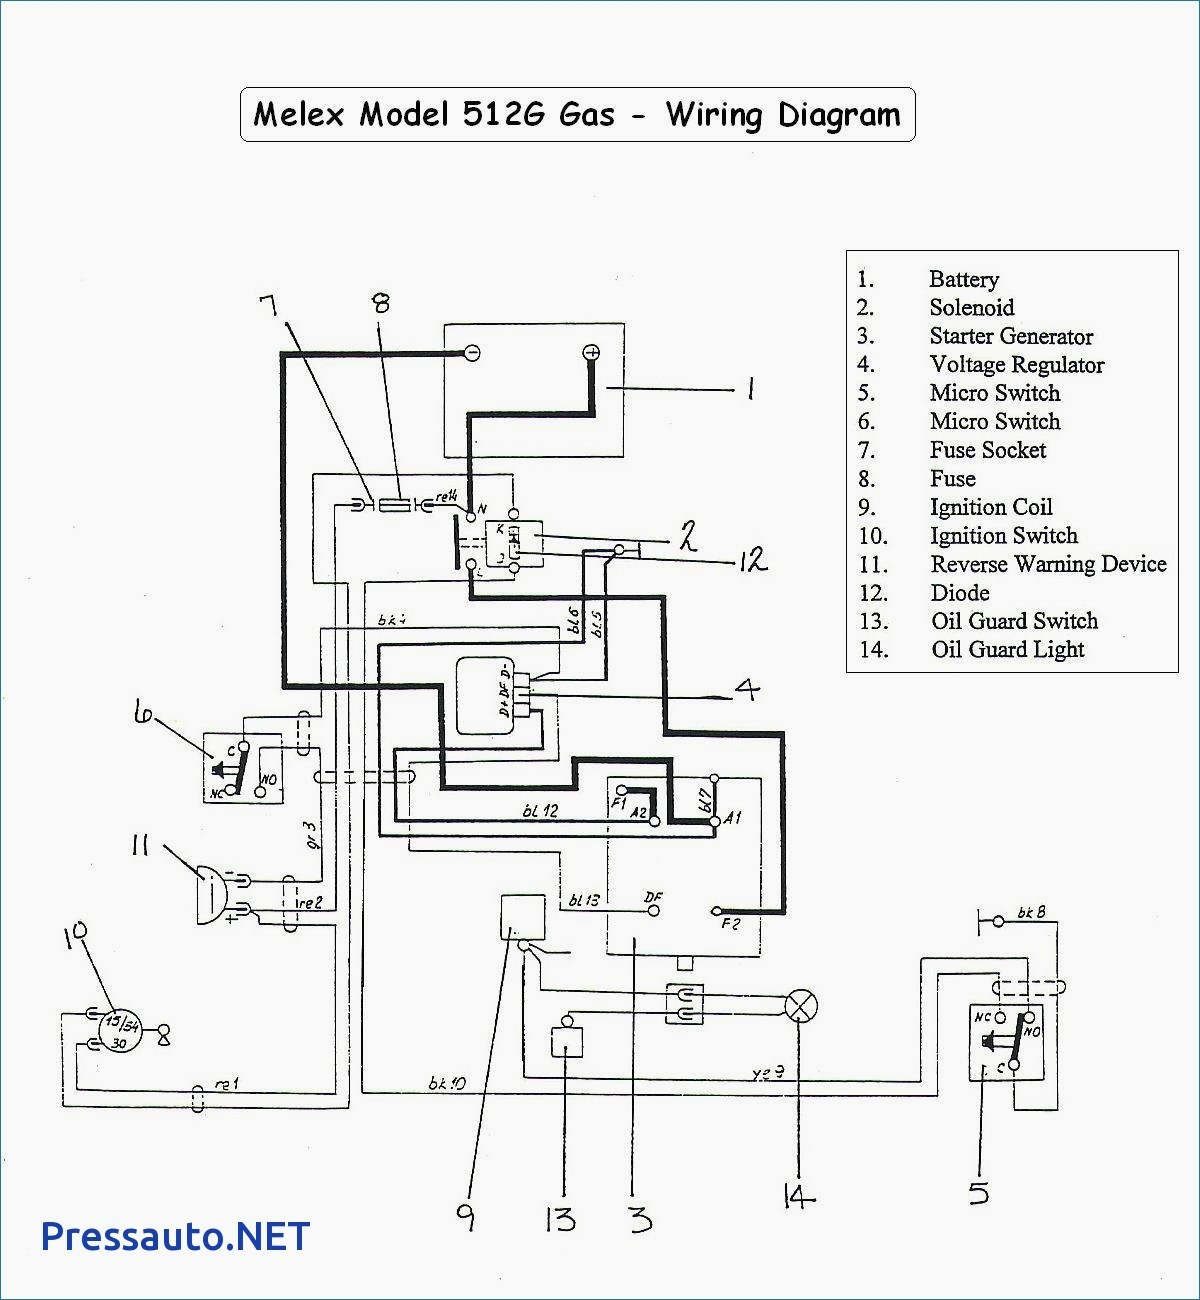 White Rodgers Solenoid Wiring Diagram | Wiring Diagram - Golf Cart Solenoid Wiring Diagram